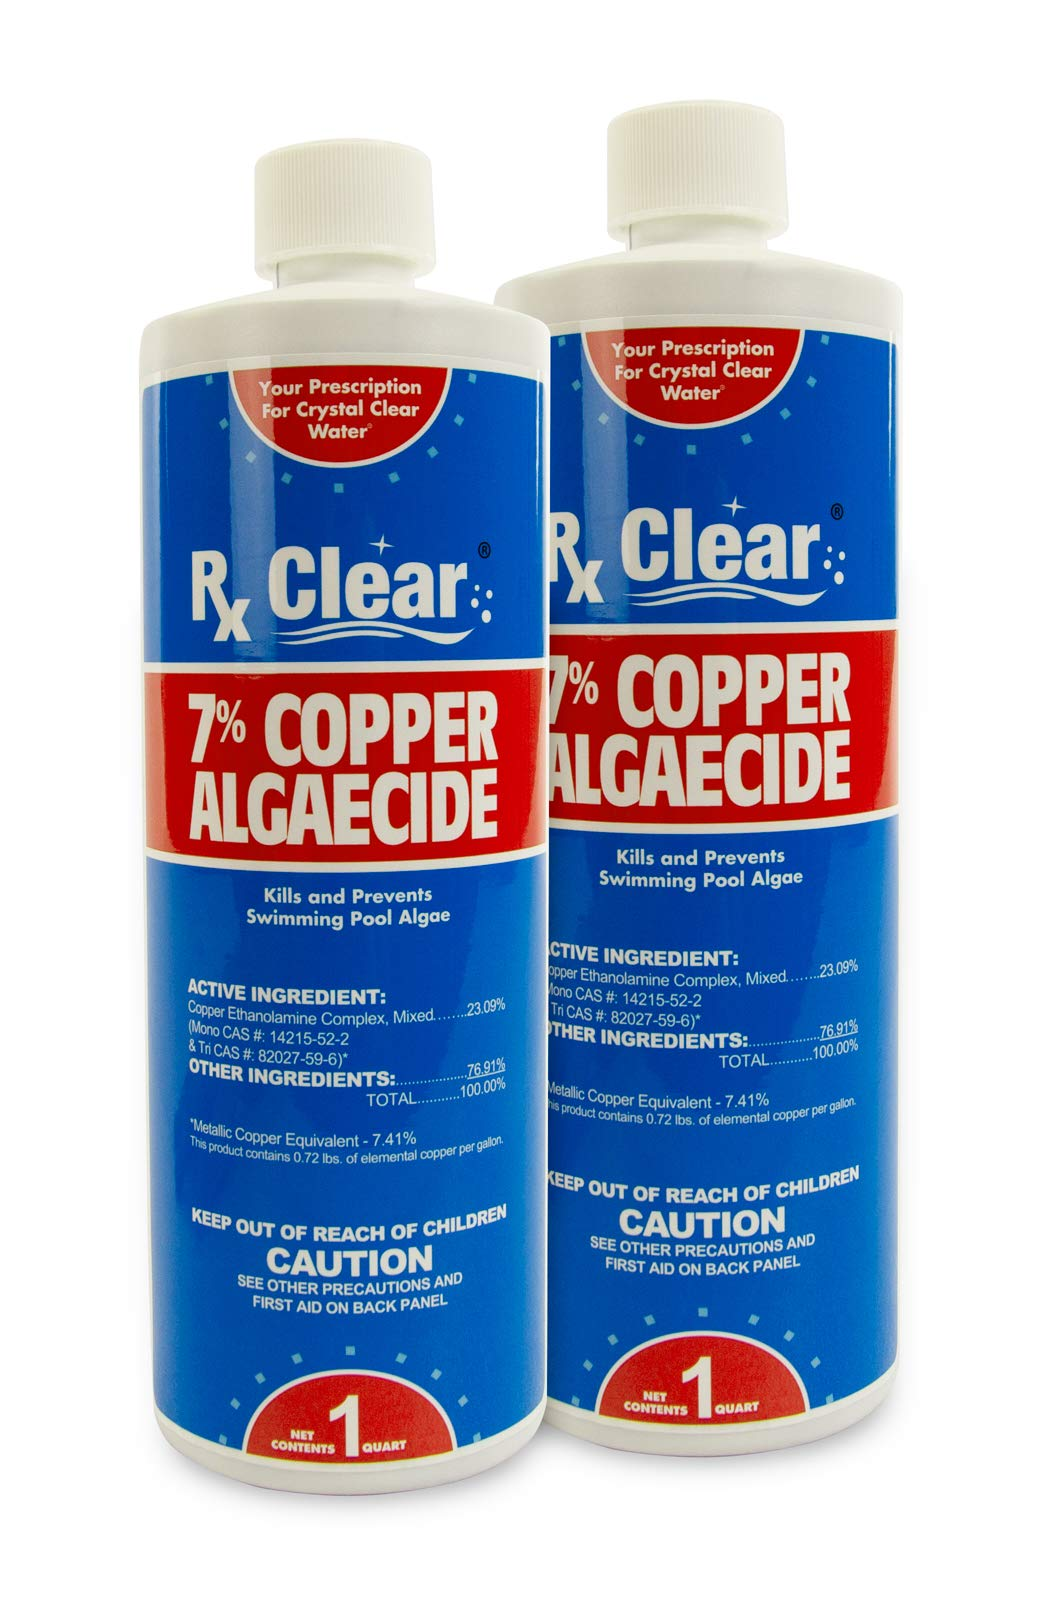 Rx Clear 7% Copper Algaecide | Kills and Prevents Algae for In-Ground and Above Ground Swimming Pools | Safe Formula for Swimmers | One Quart Bottles | 2 Pack by Rx Clear